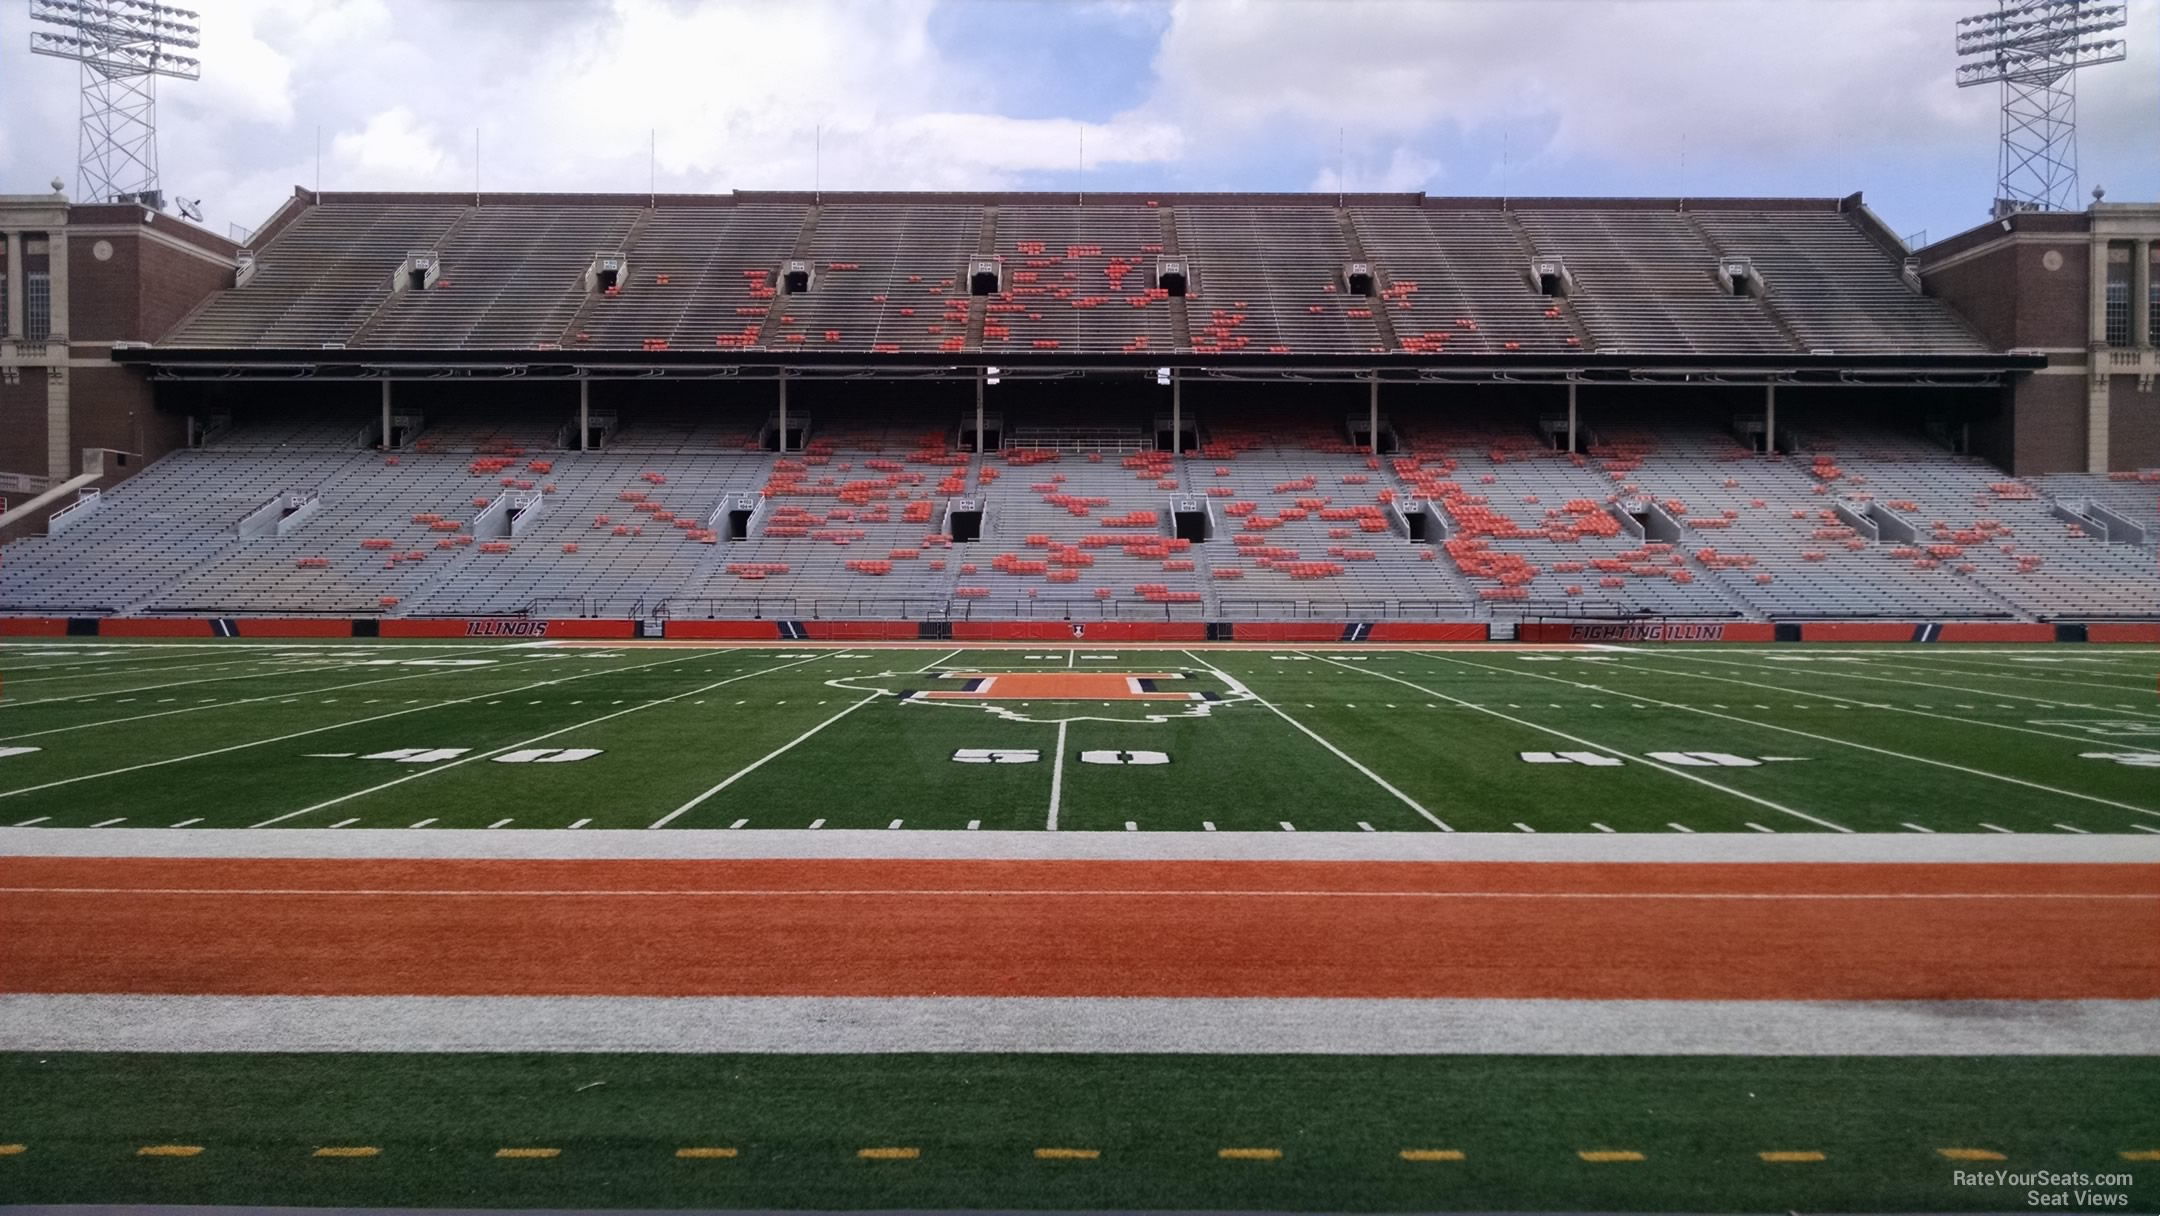 Seat View for Memorial Stadium - IL Section 127, Row 7